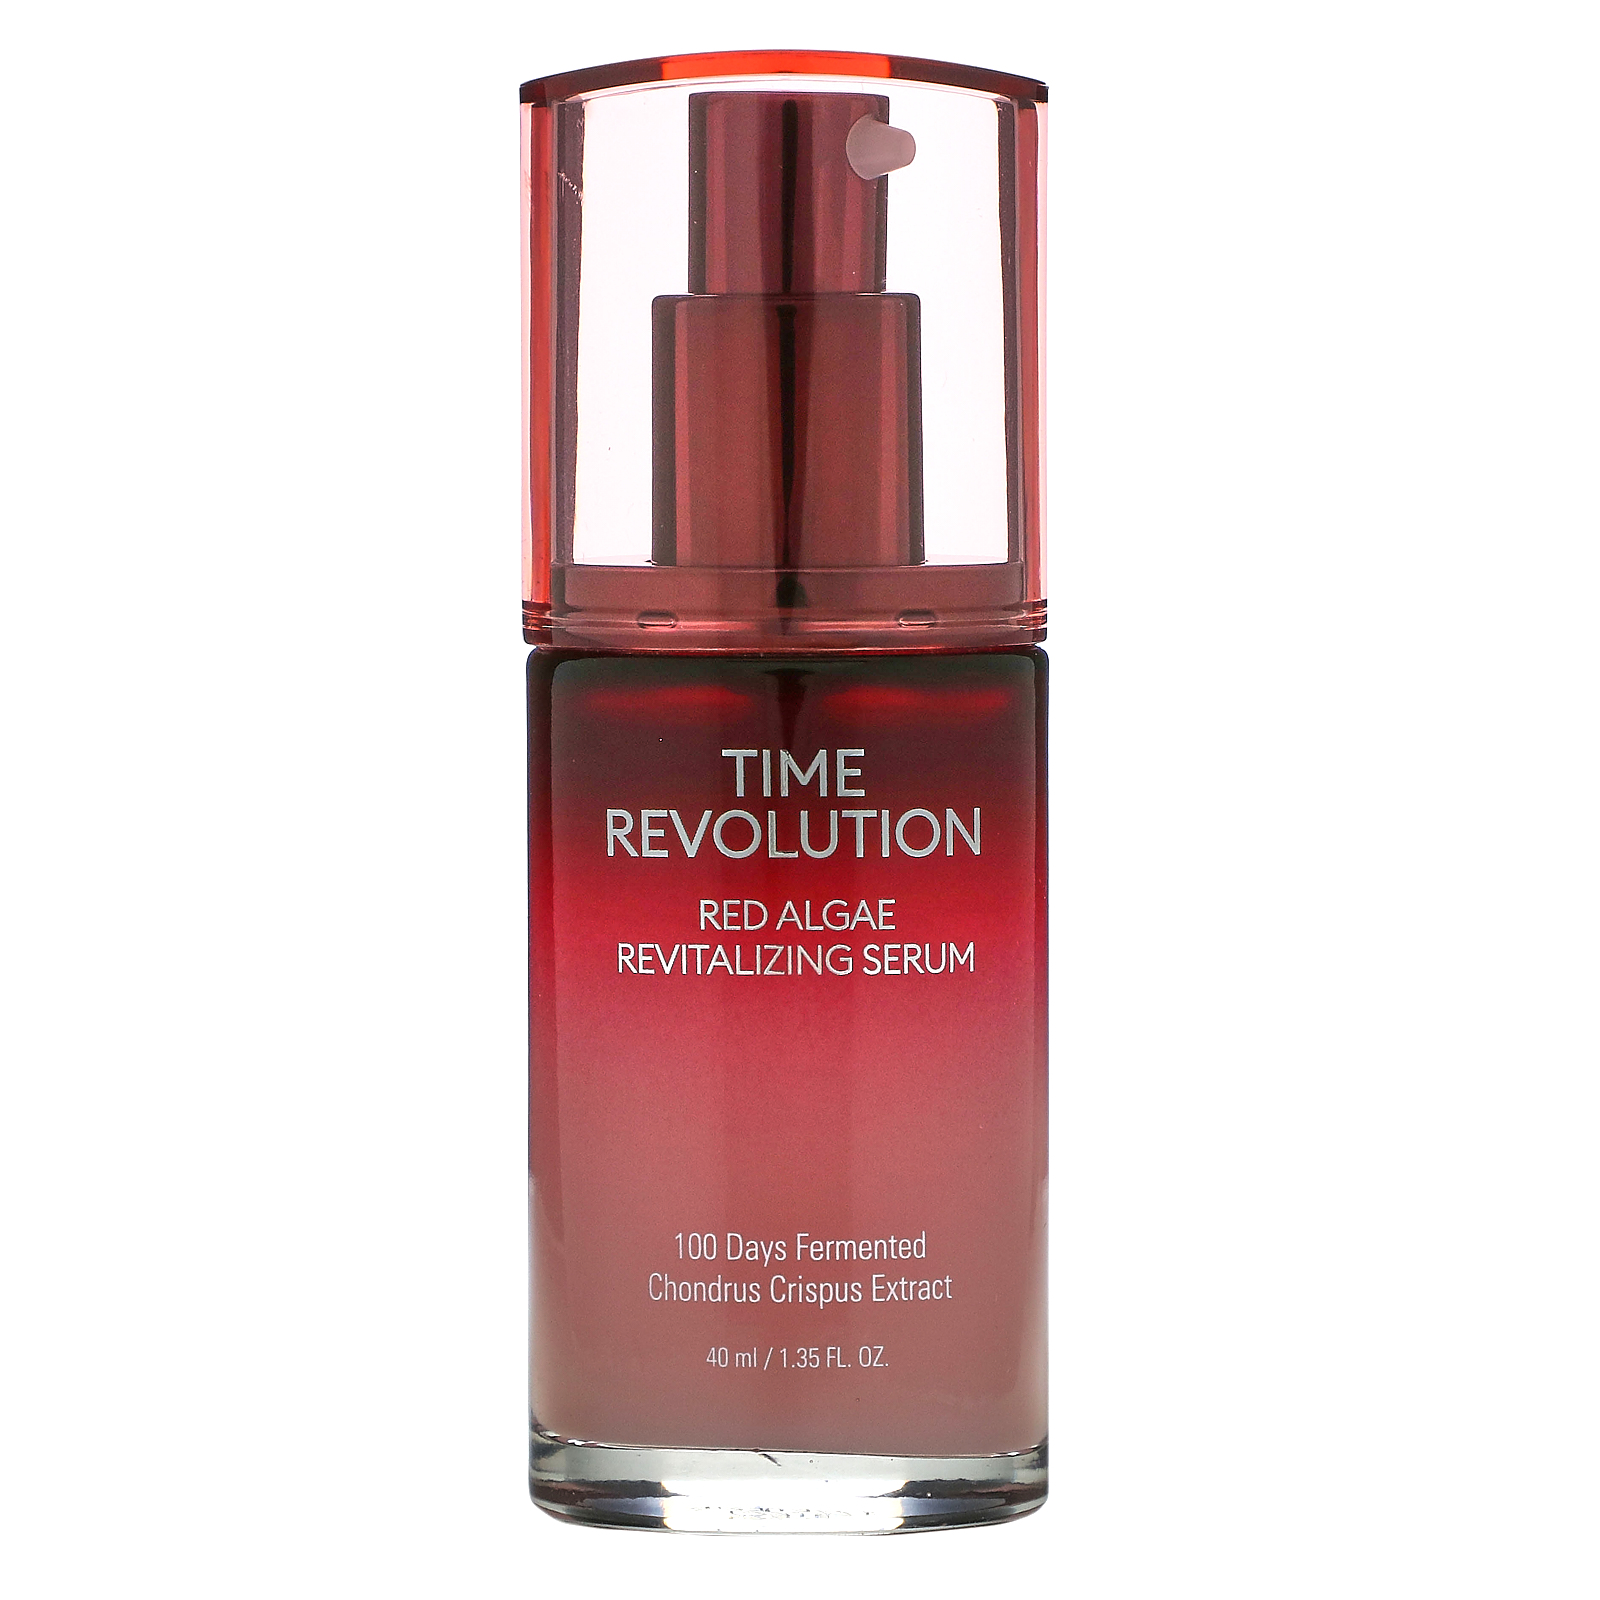 Missha, Time Revolution, Red Algae Revitalizing Serum, 1.35 fl oz (40 ml)